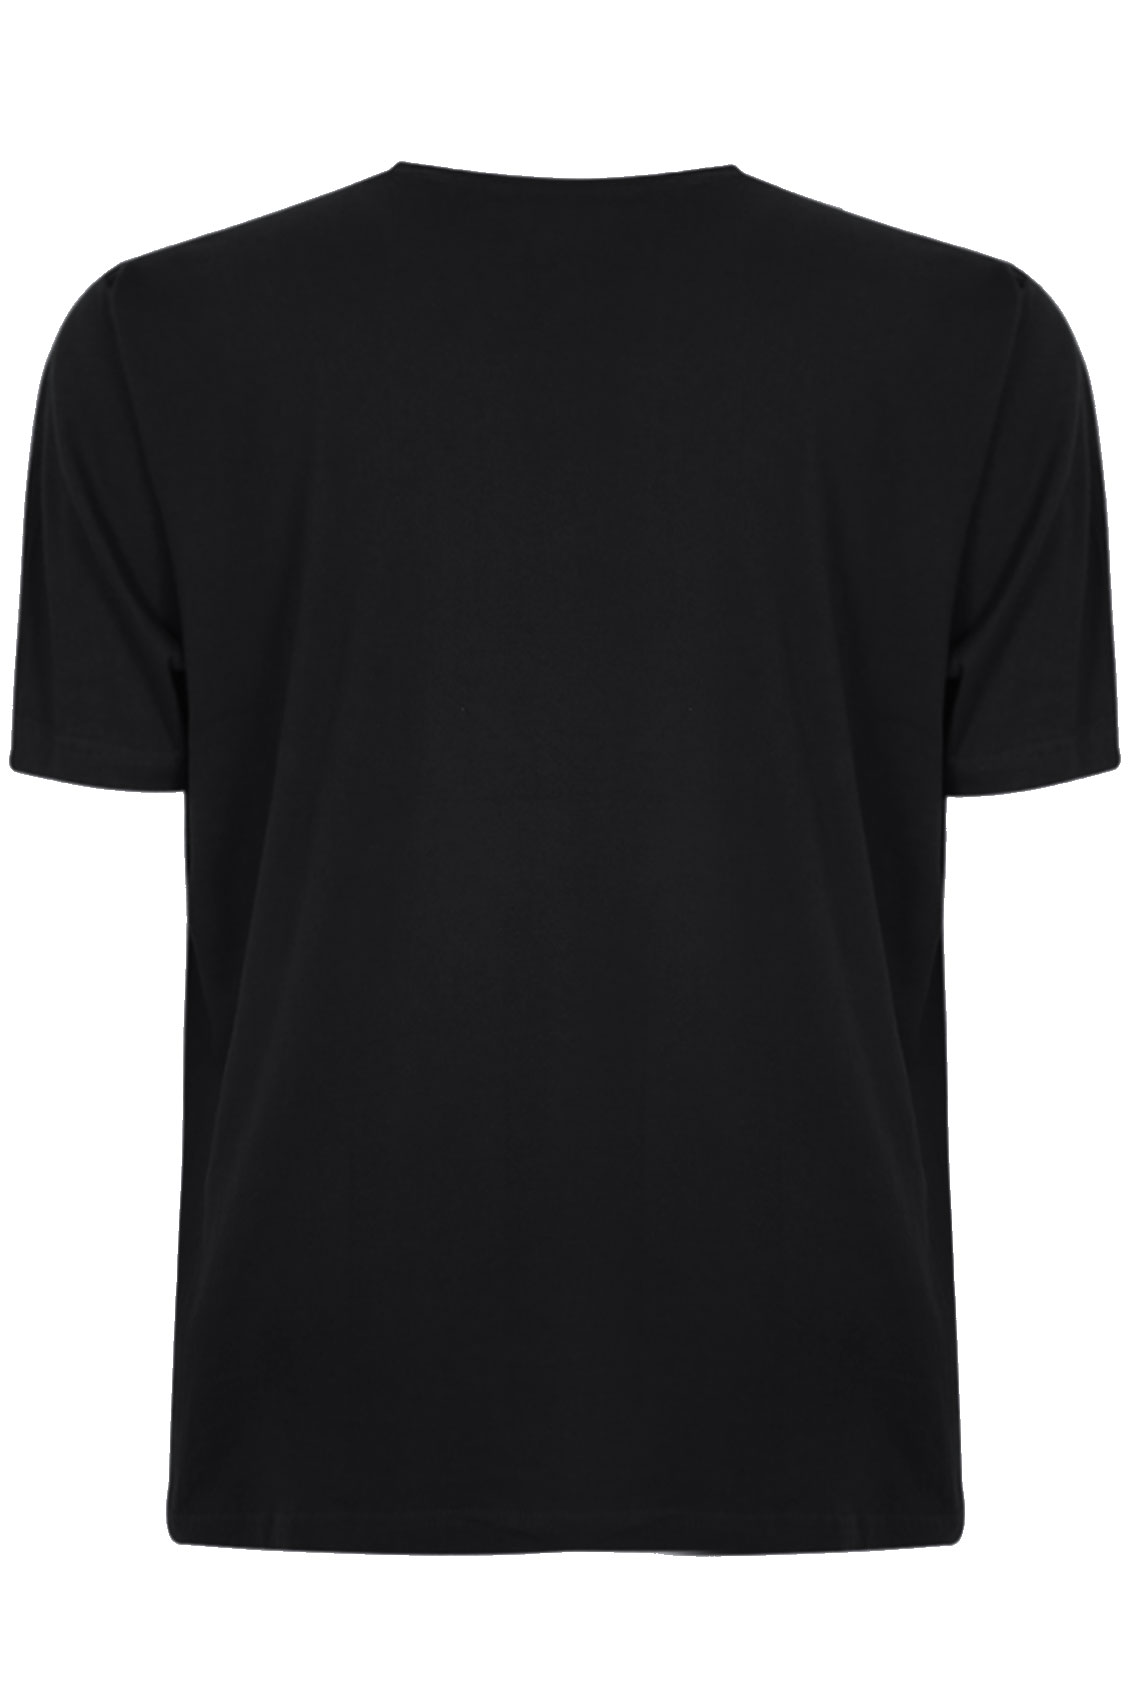 BadRhino Black Basic Plain Crew Neck T-Shirt Extra large sizes M,L ...